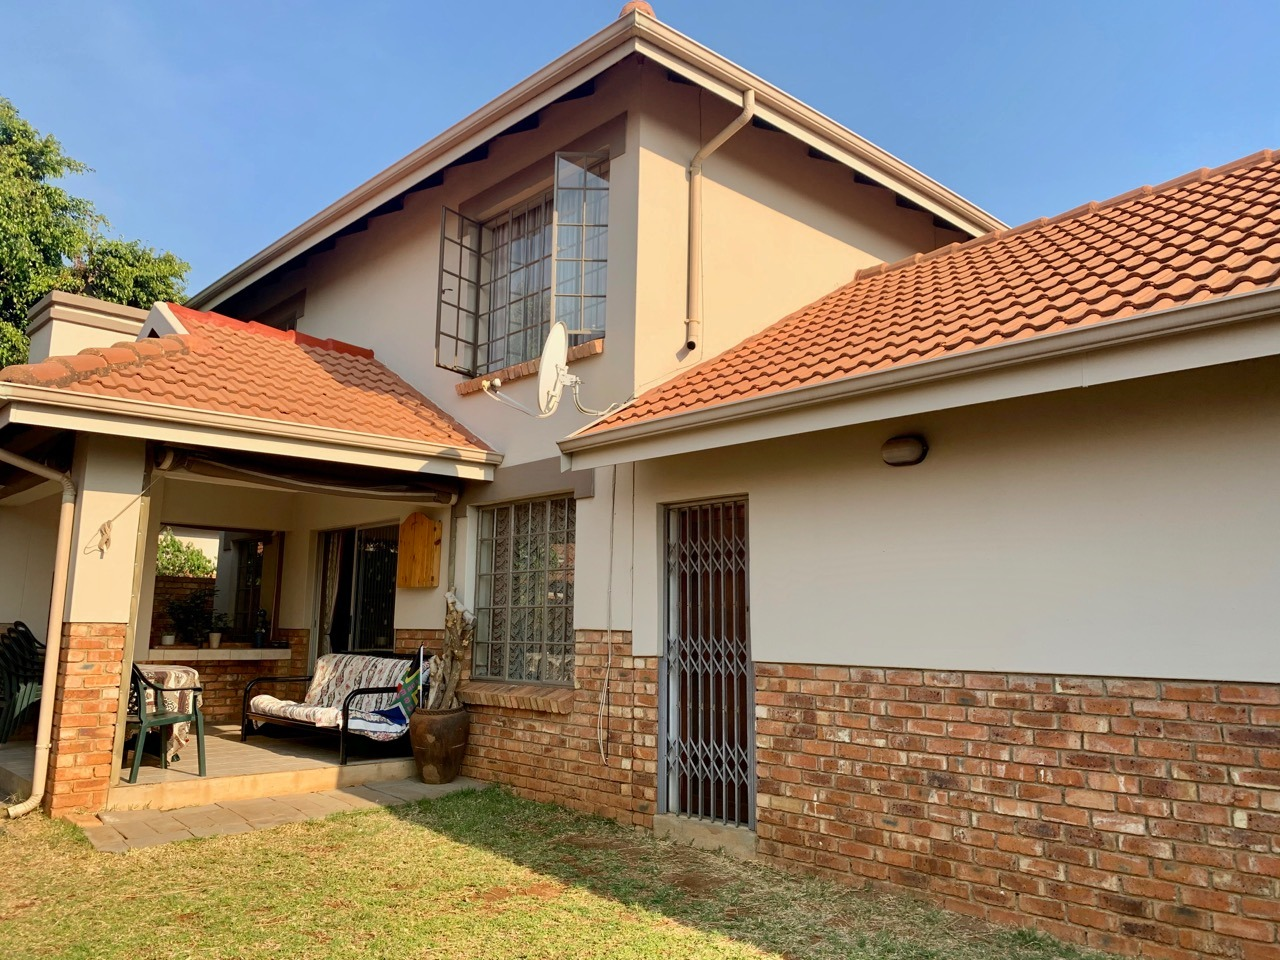 3 Bedroom Duplex in Secure Estate